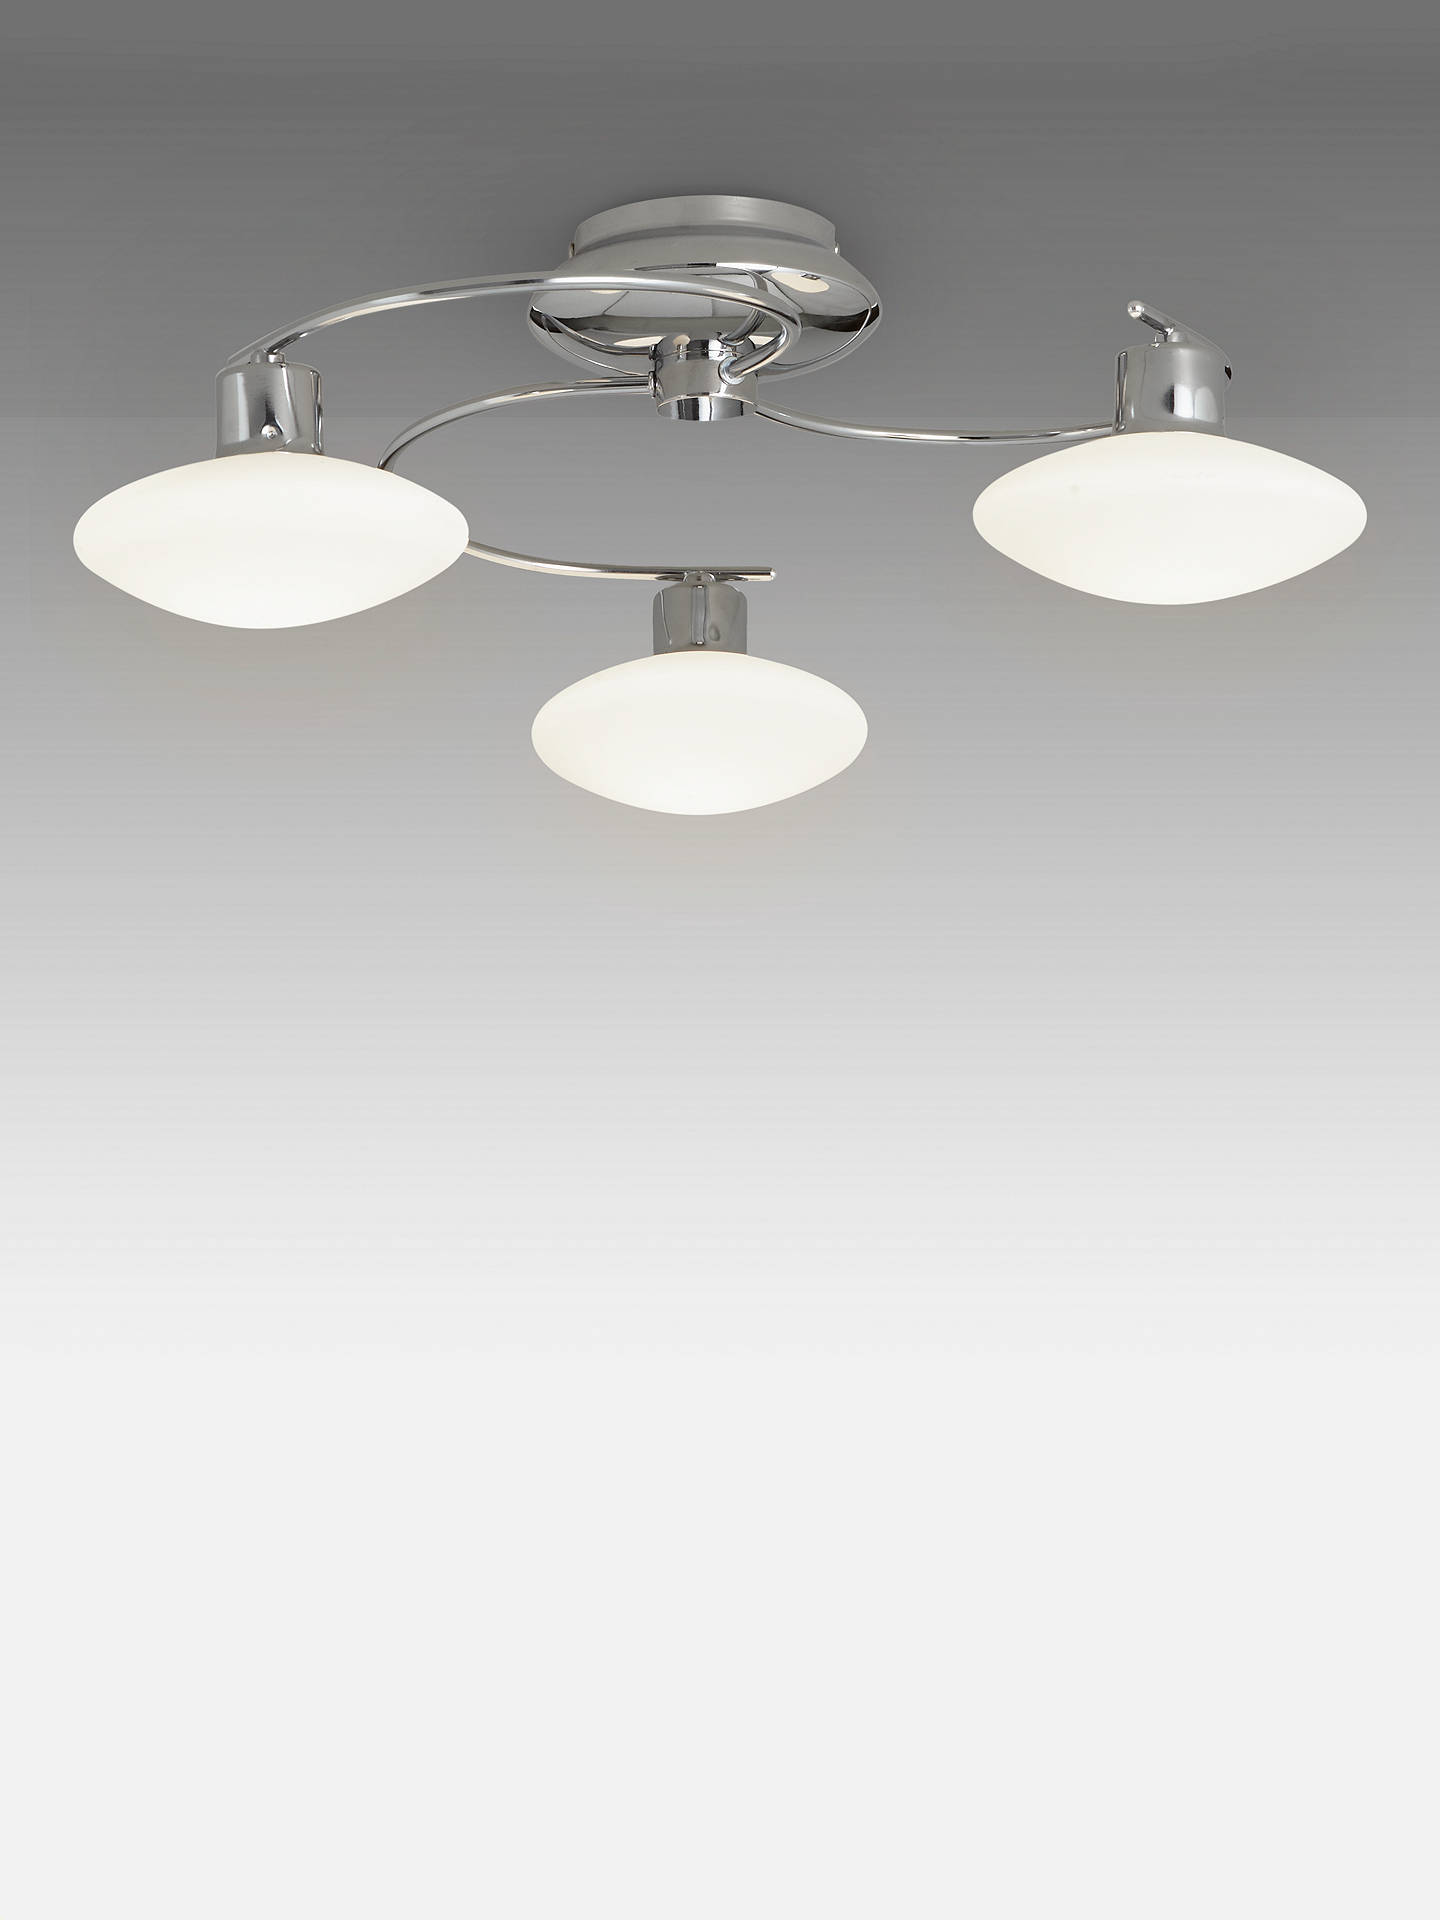 Buyjohn lewis partners tameo semi flush 3 arm led ceiling light chrome online